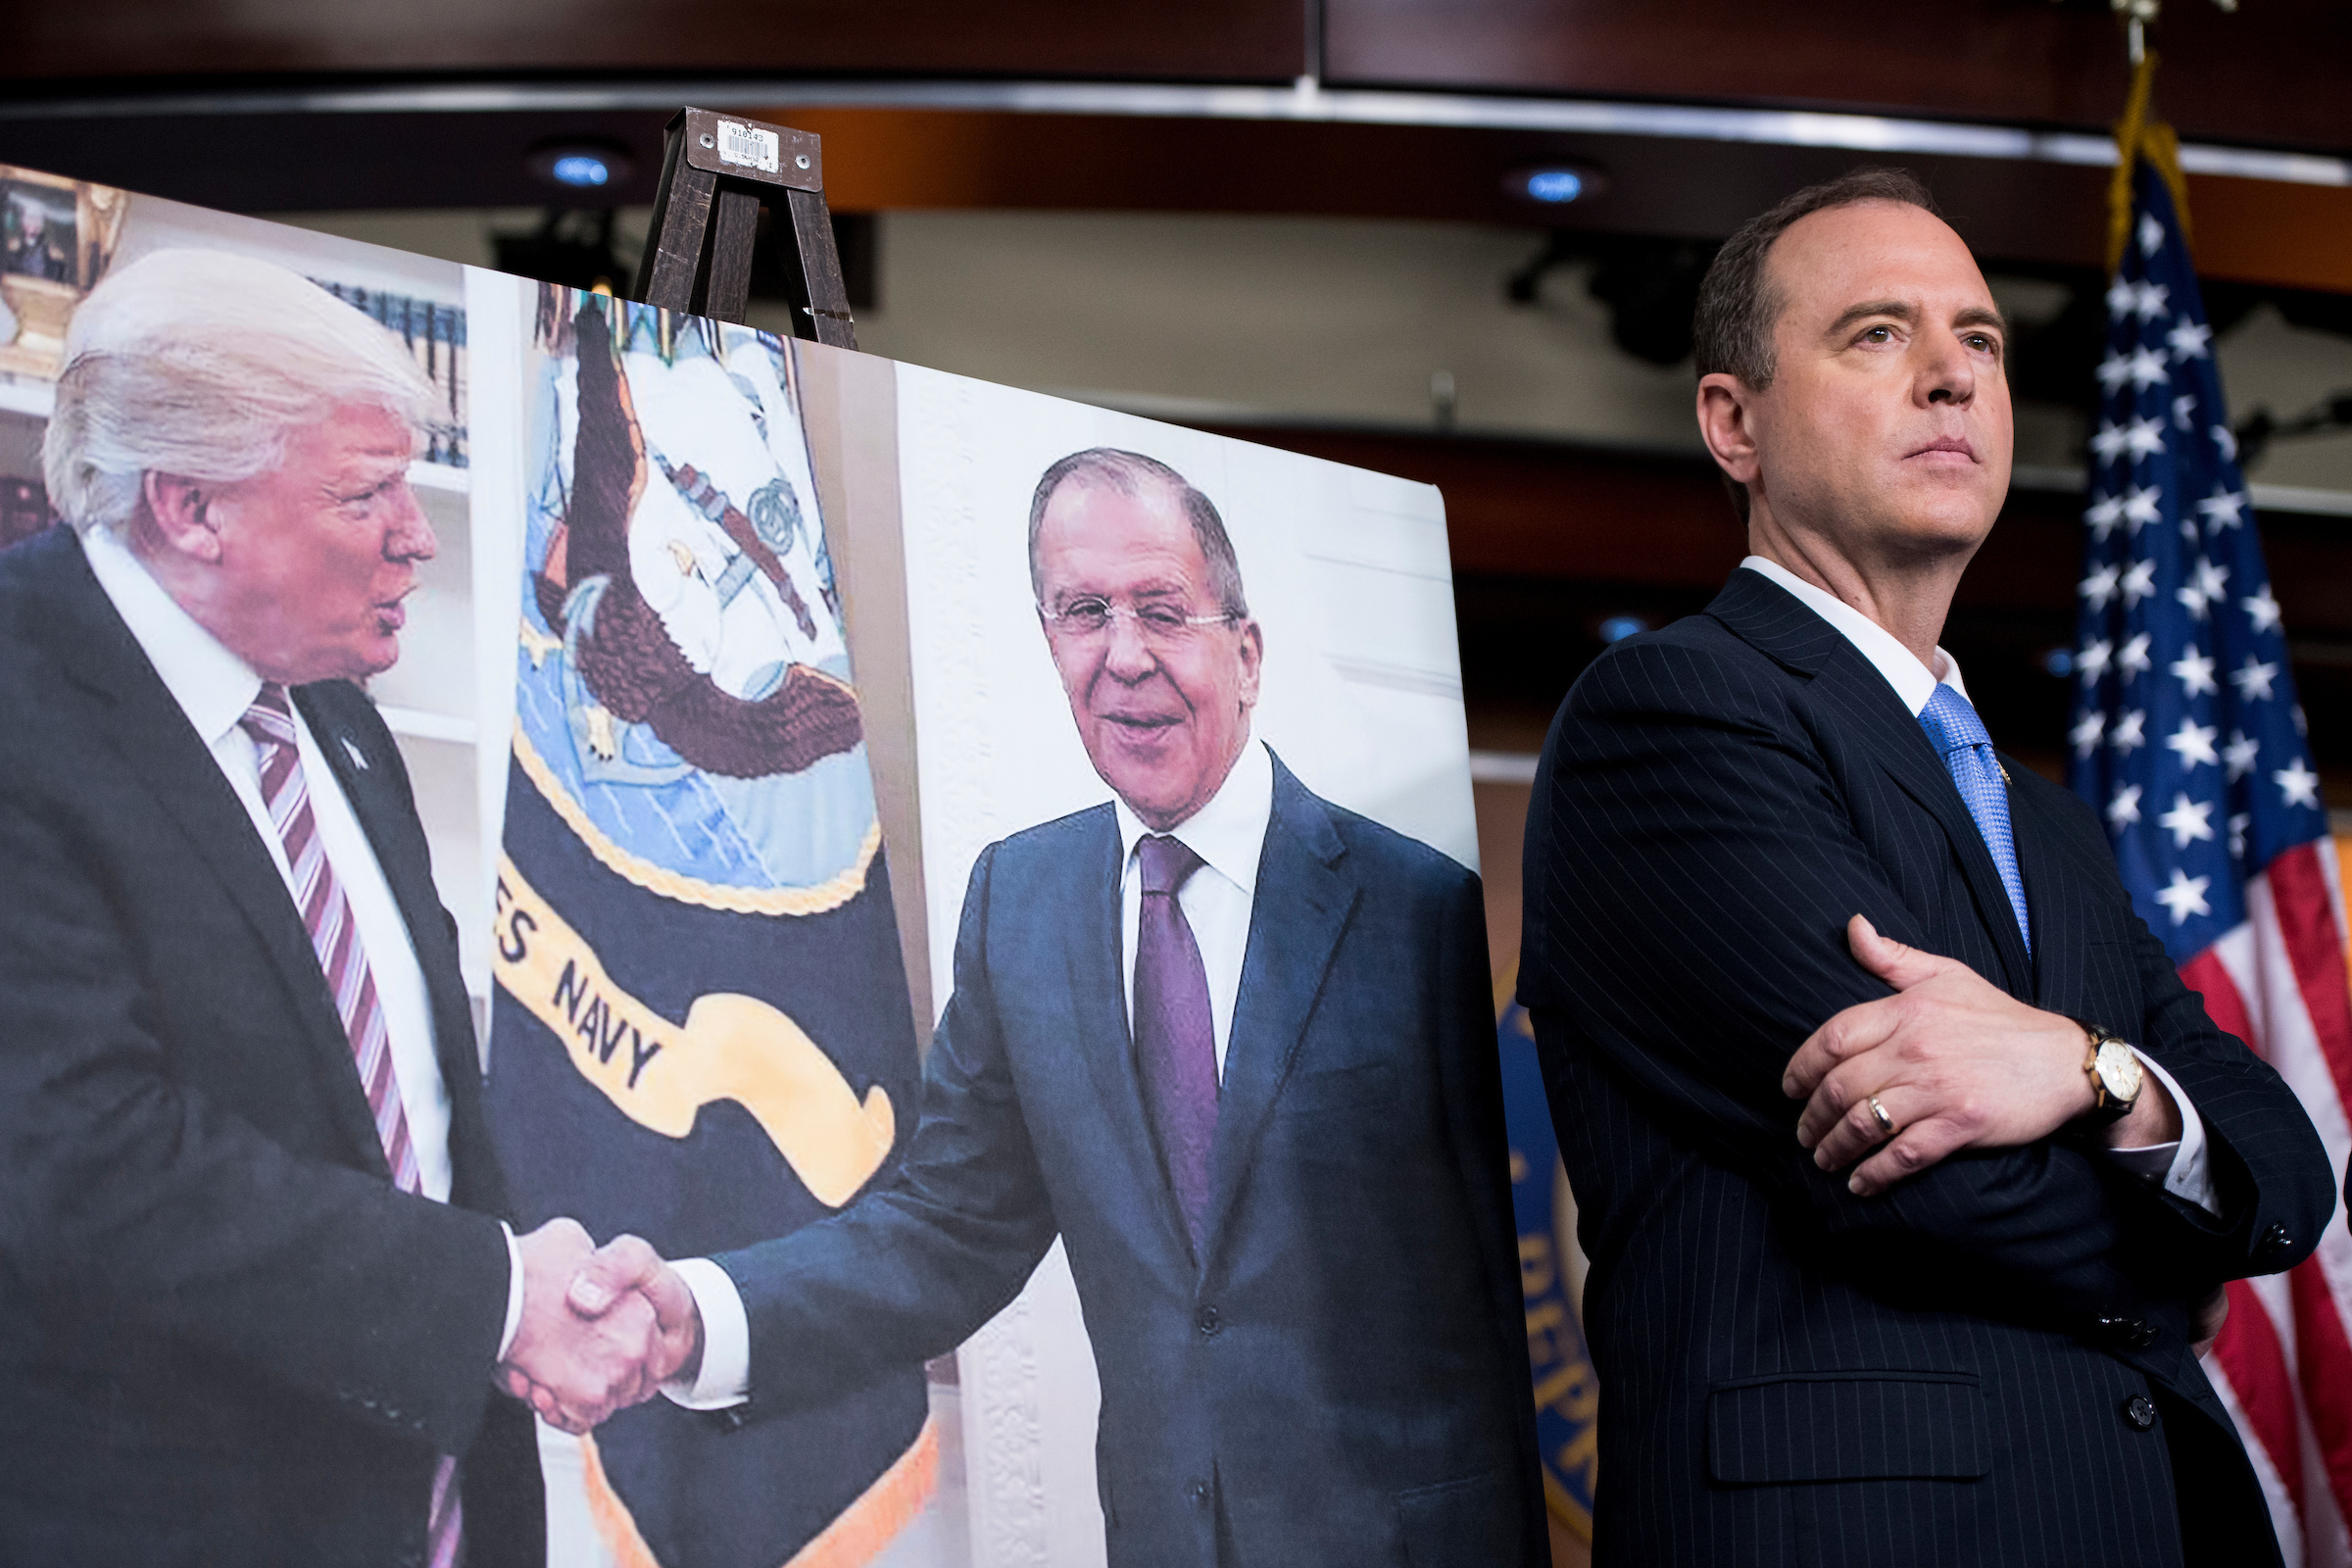 UNITED STATES - MAY 17: House Intelligence ranking member Adam Schiff, D-Calif., stands next to a photo of President Donald Trump in the Oval Office shaking hands with Russian Foreign Minister Sergey Lavrov during the House Democrats' news conference on President Trump and Russia ties on Wednesday, May 17, 2017. (Photo By Bill Clark/CQ Roll Call)